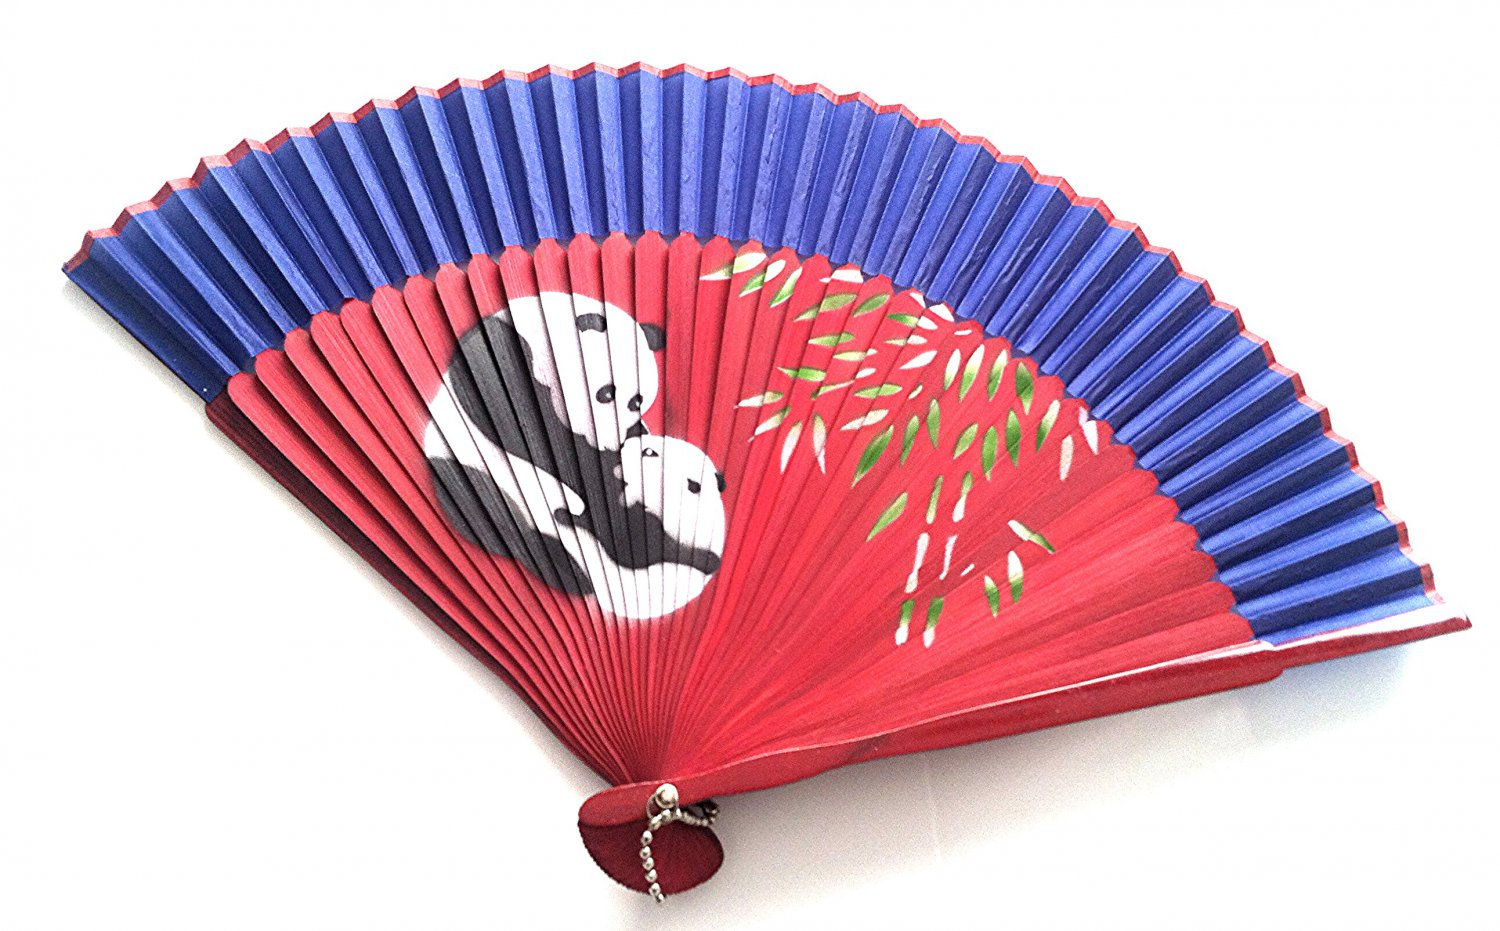 Panda Design Bamboo Folding Fan Handfan 201025 Spray Painted  with Dark Blue Fabric Color